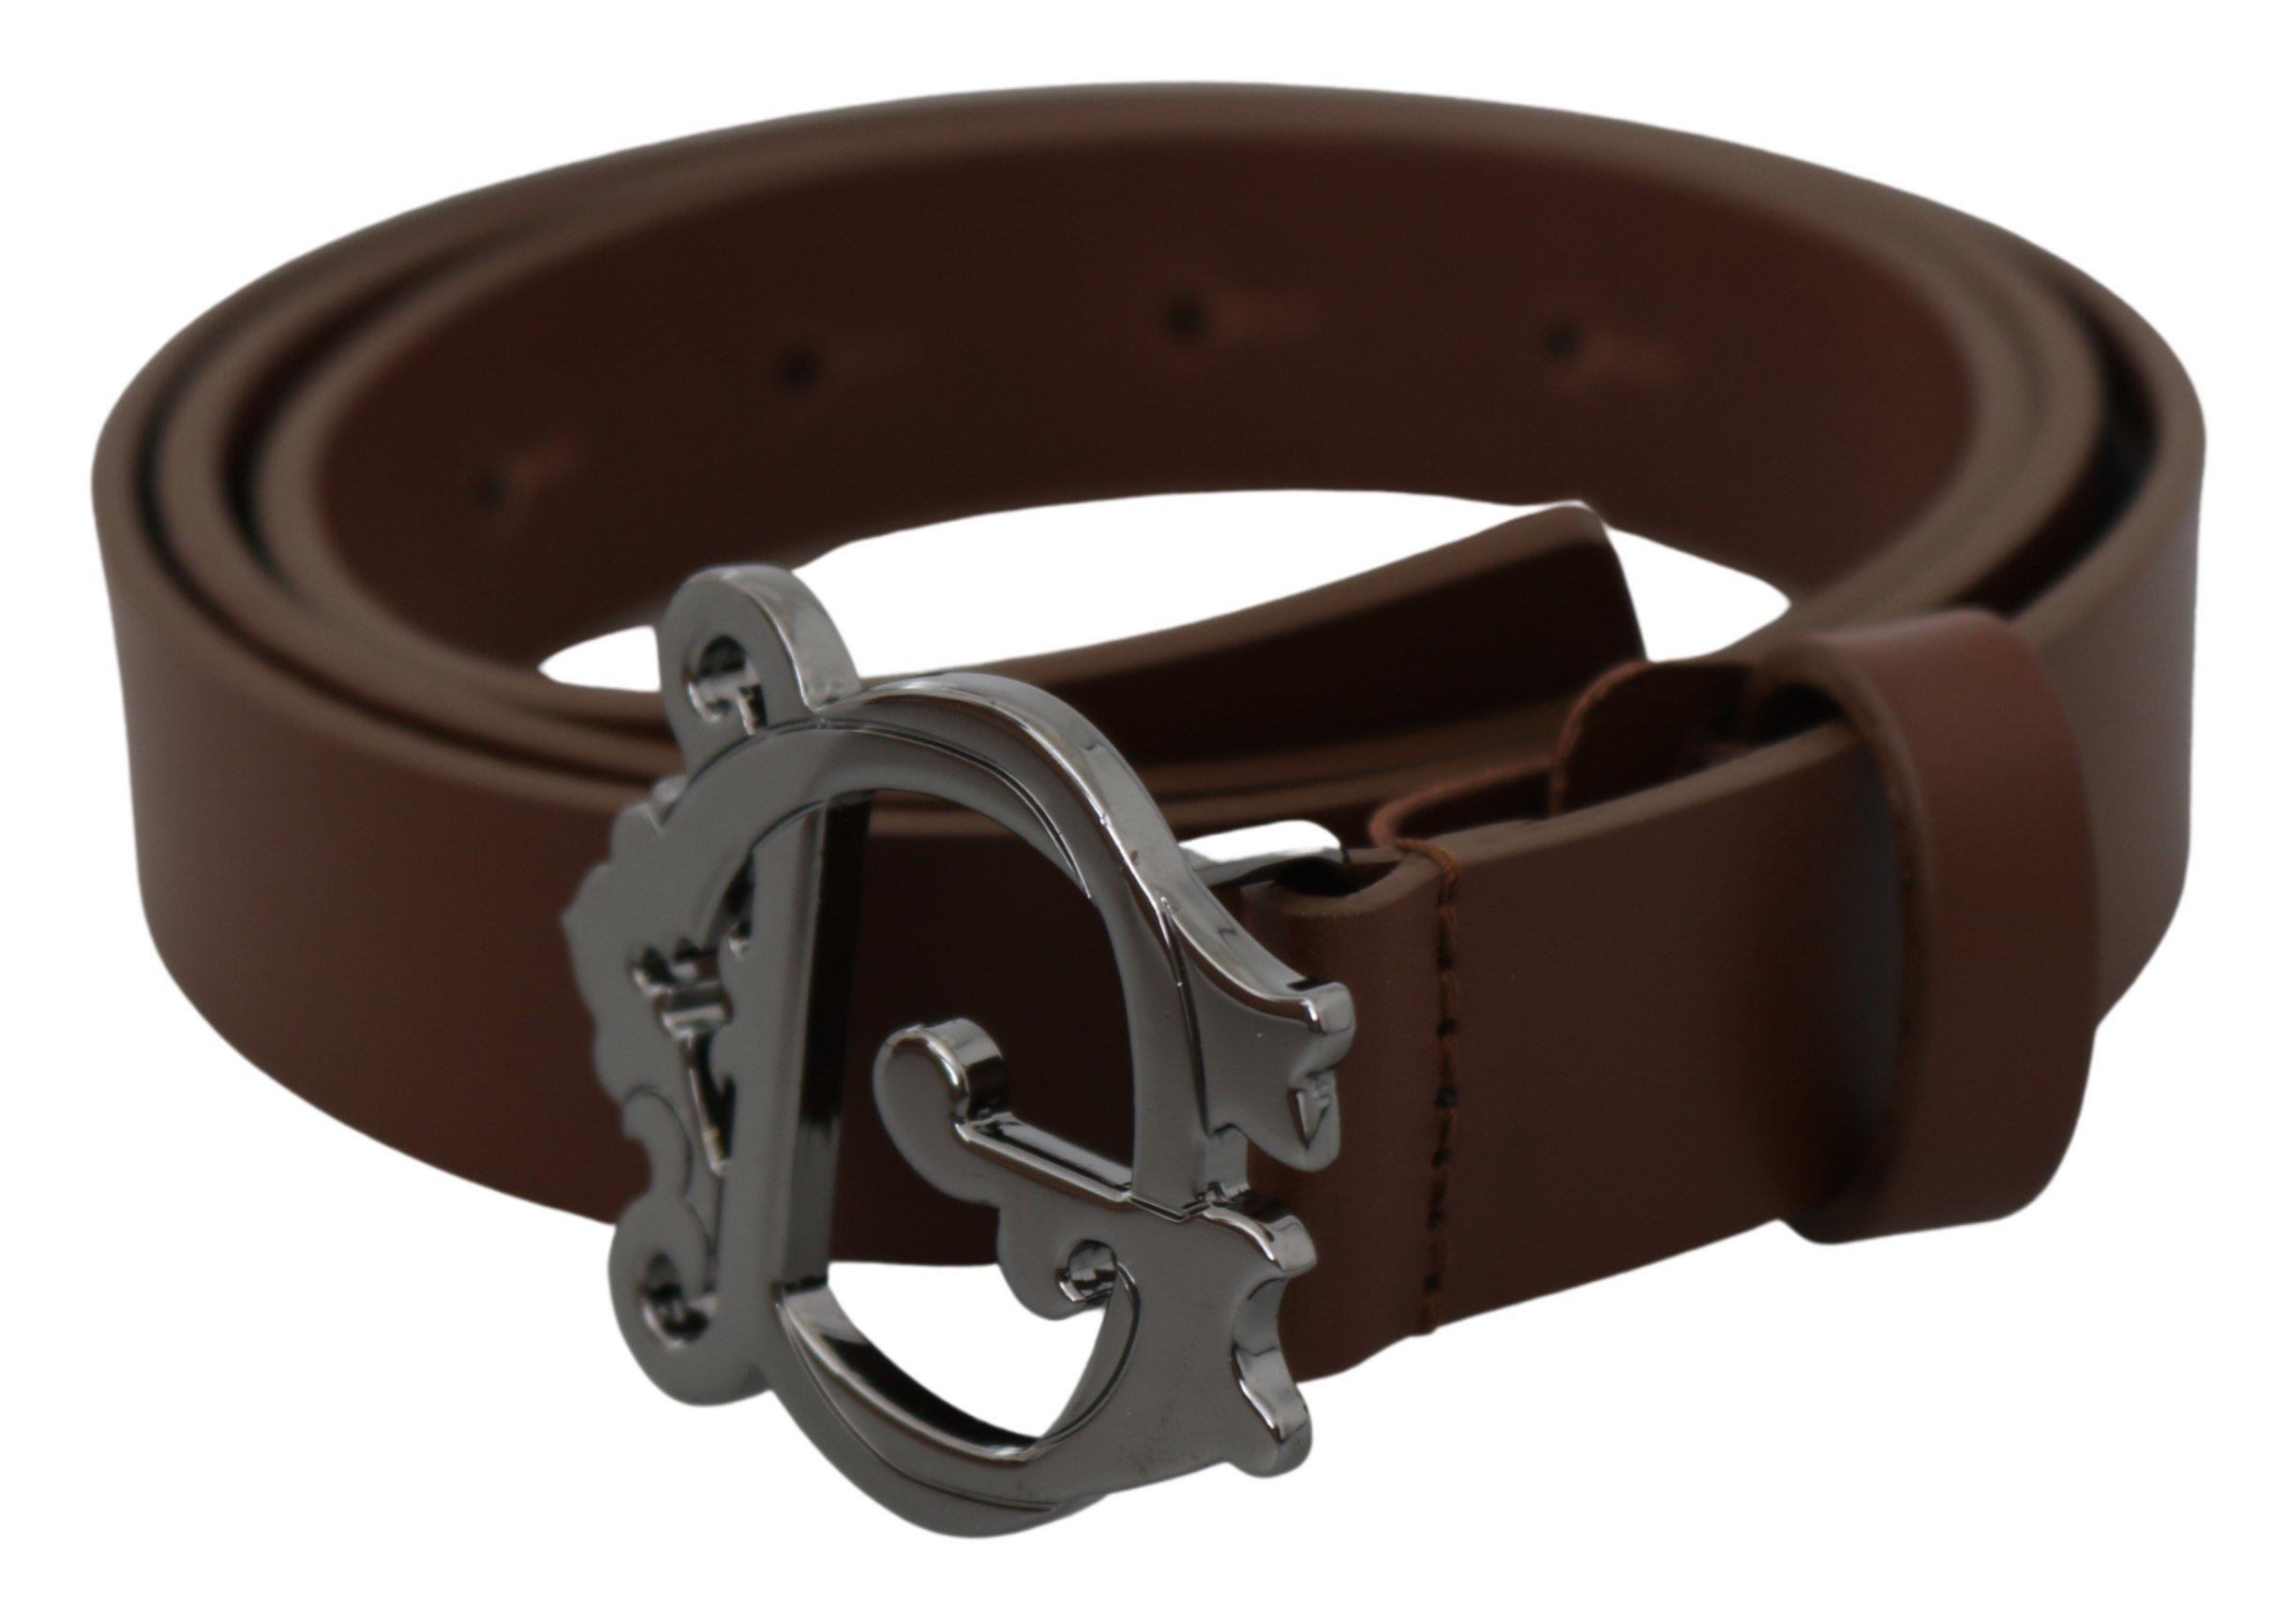 Brown Leather Gray Baroque DG Buckle Belt - 90 cm / 36 Inches